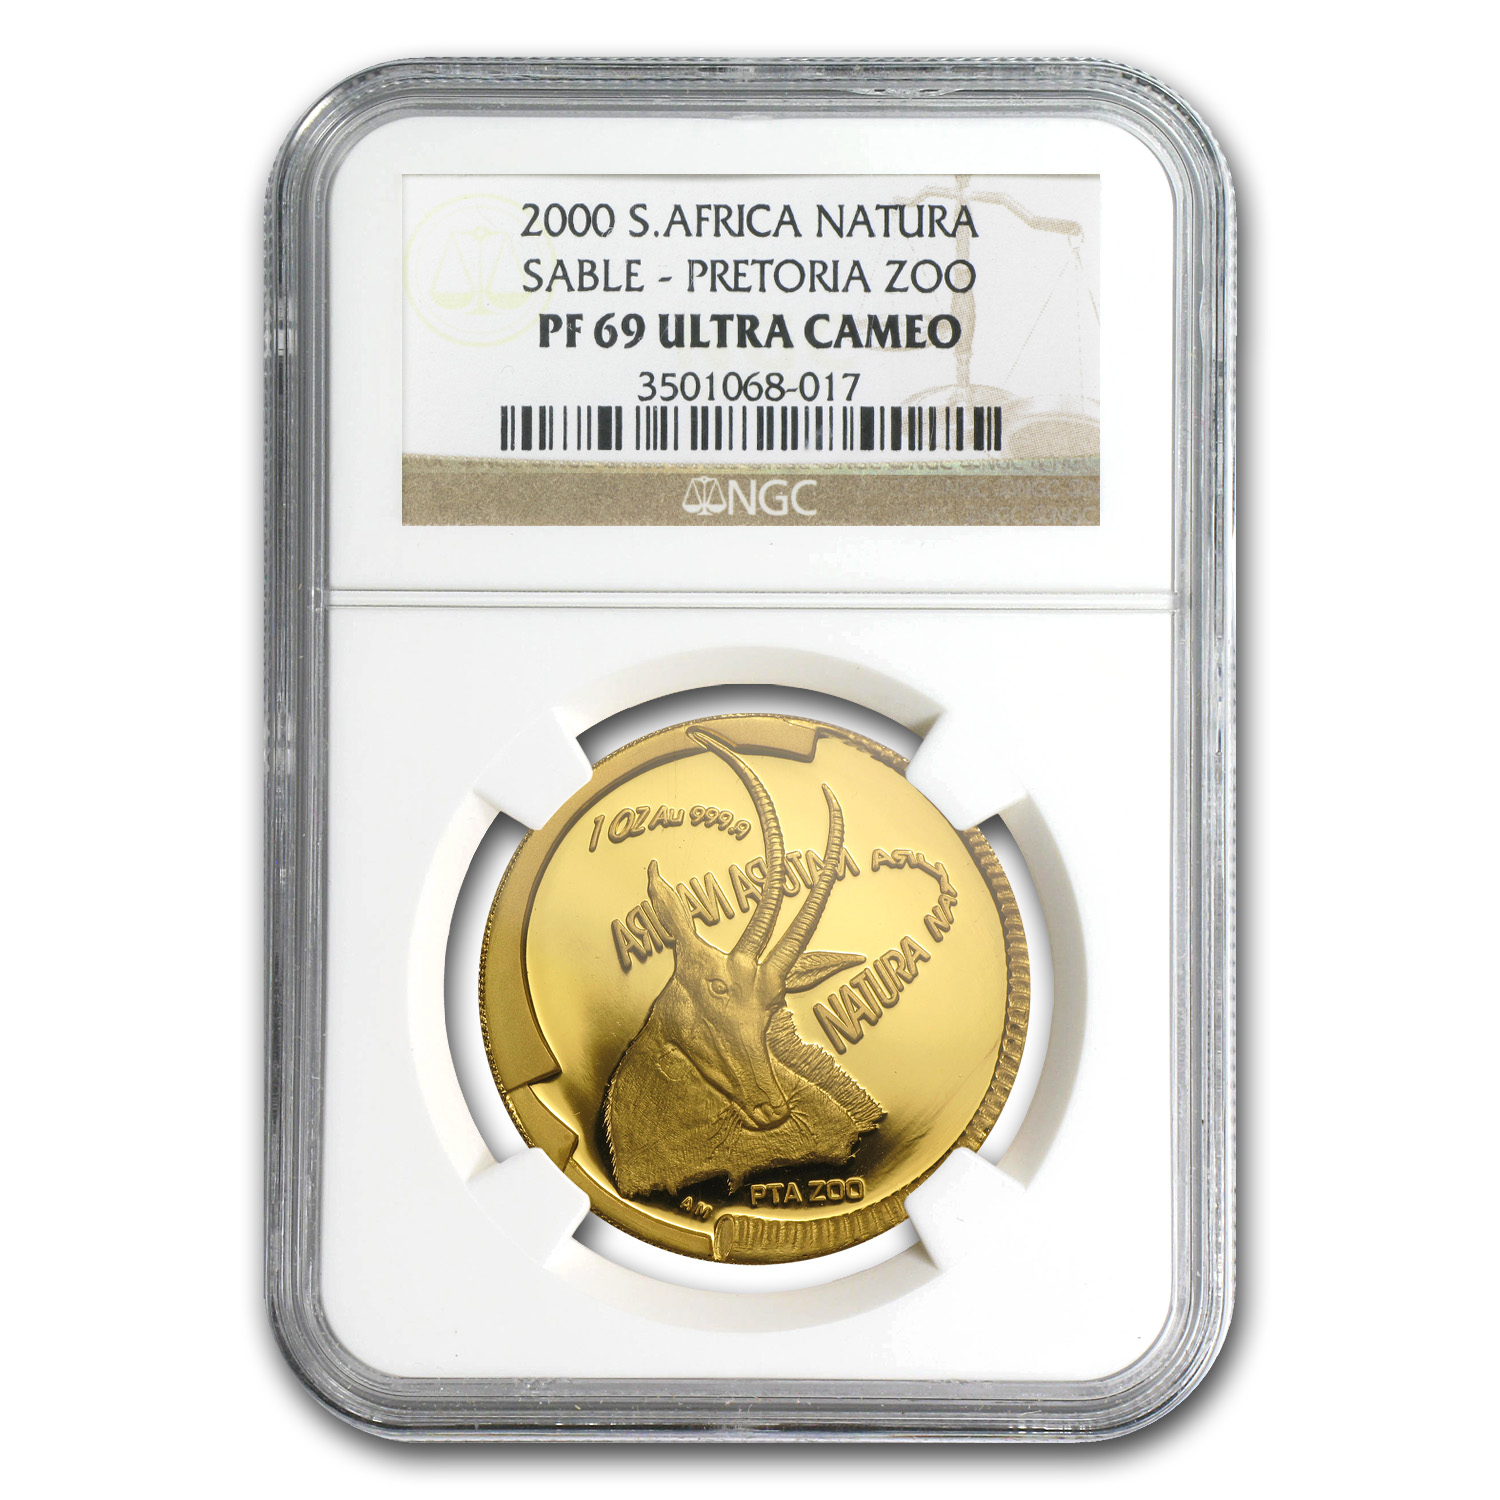 2000 South Africa 1 oz Gold Natura 100 Rand Sable PF-69 NGC